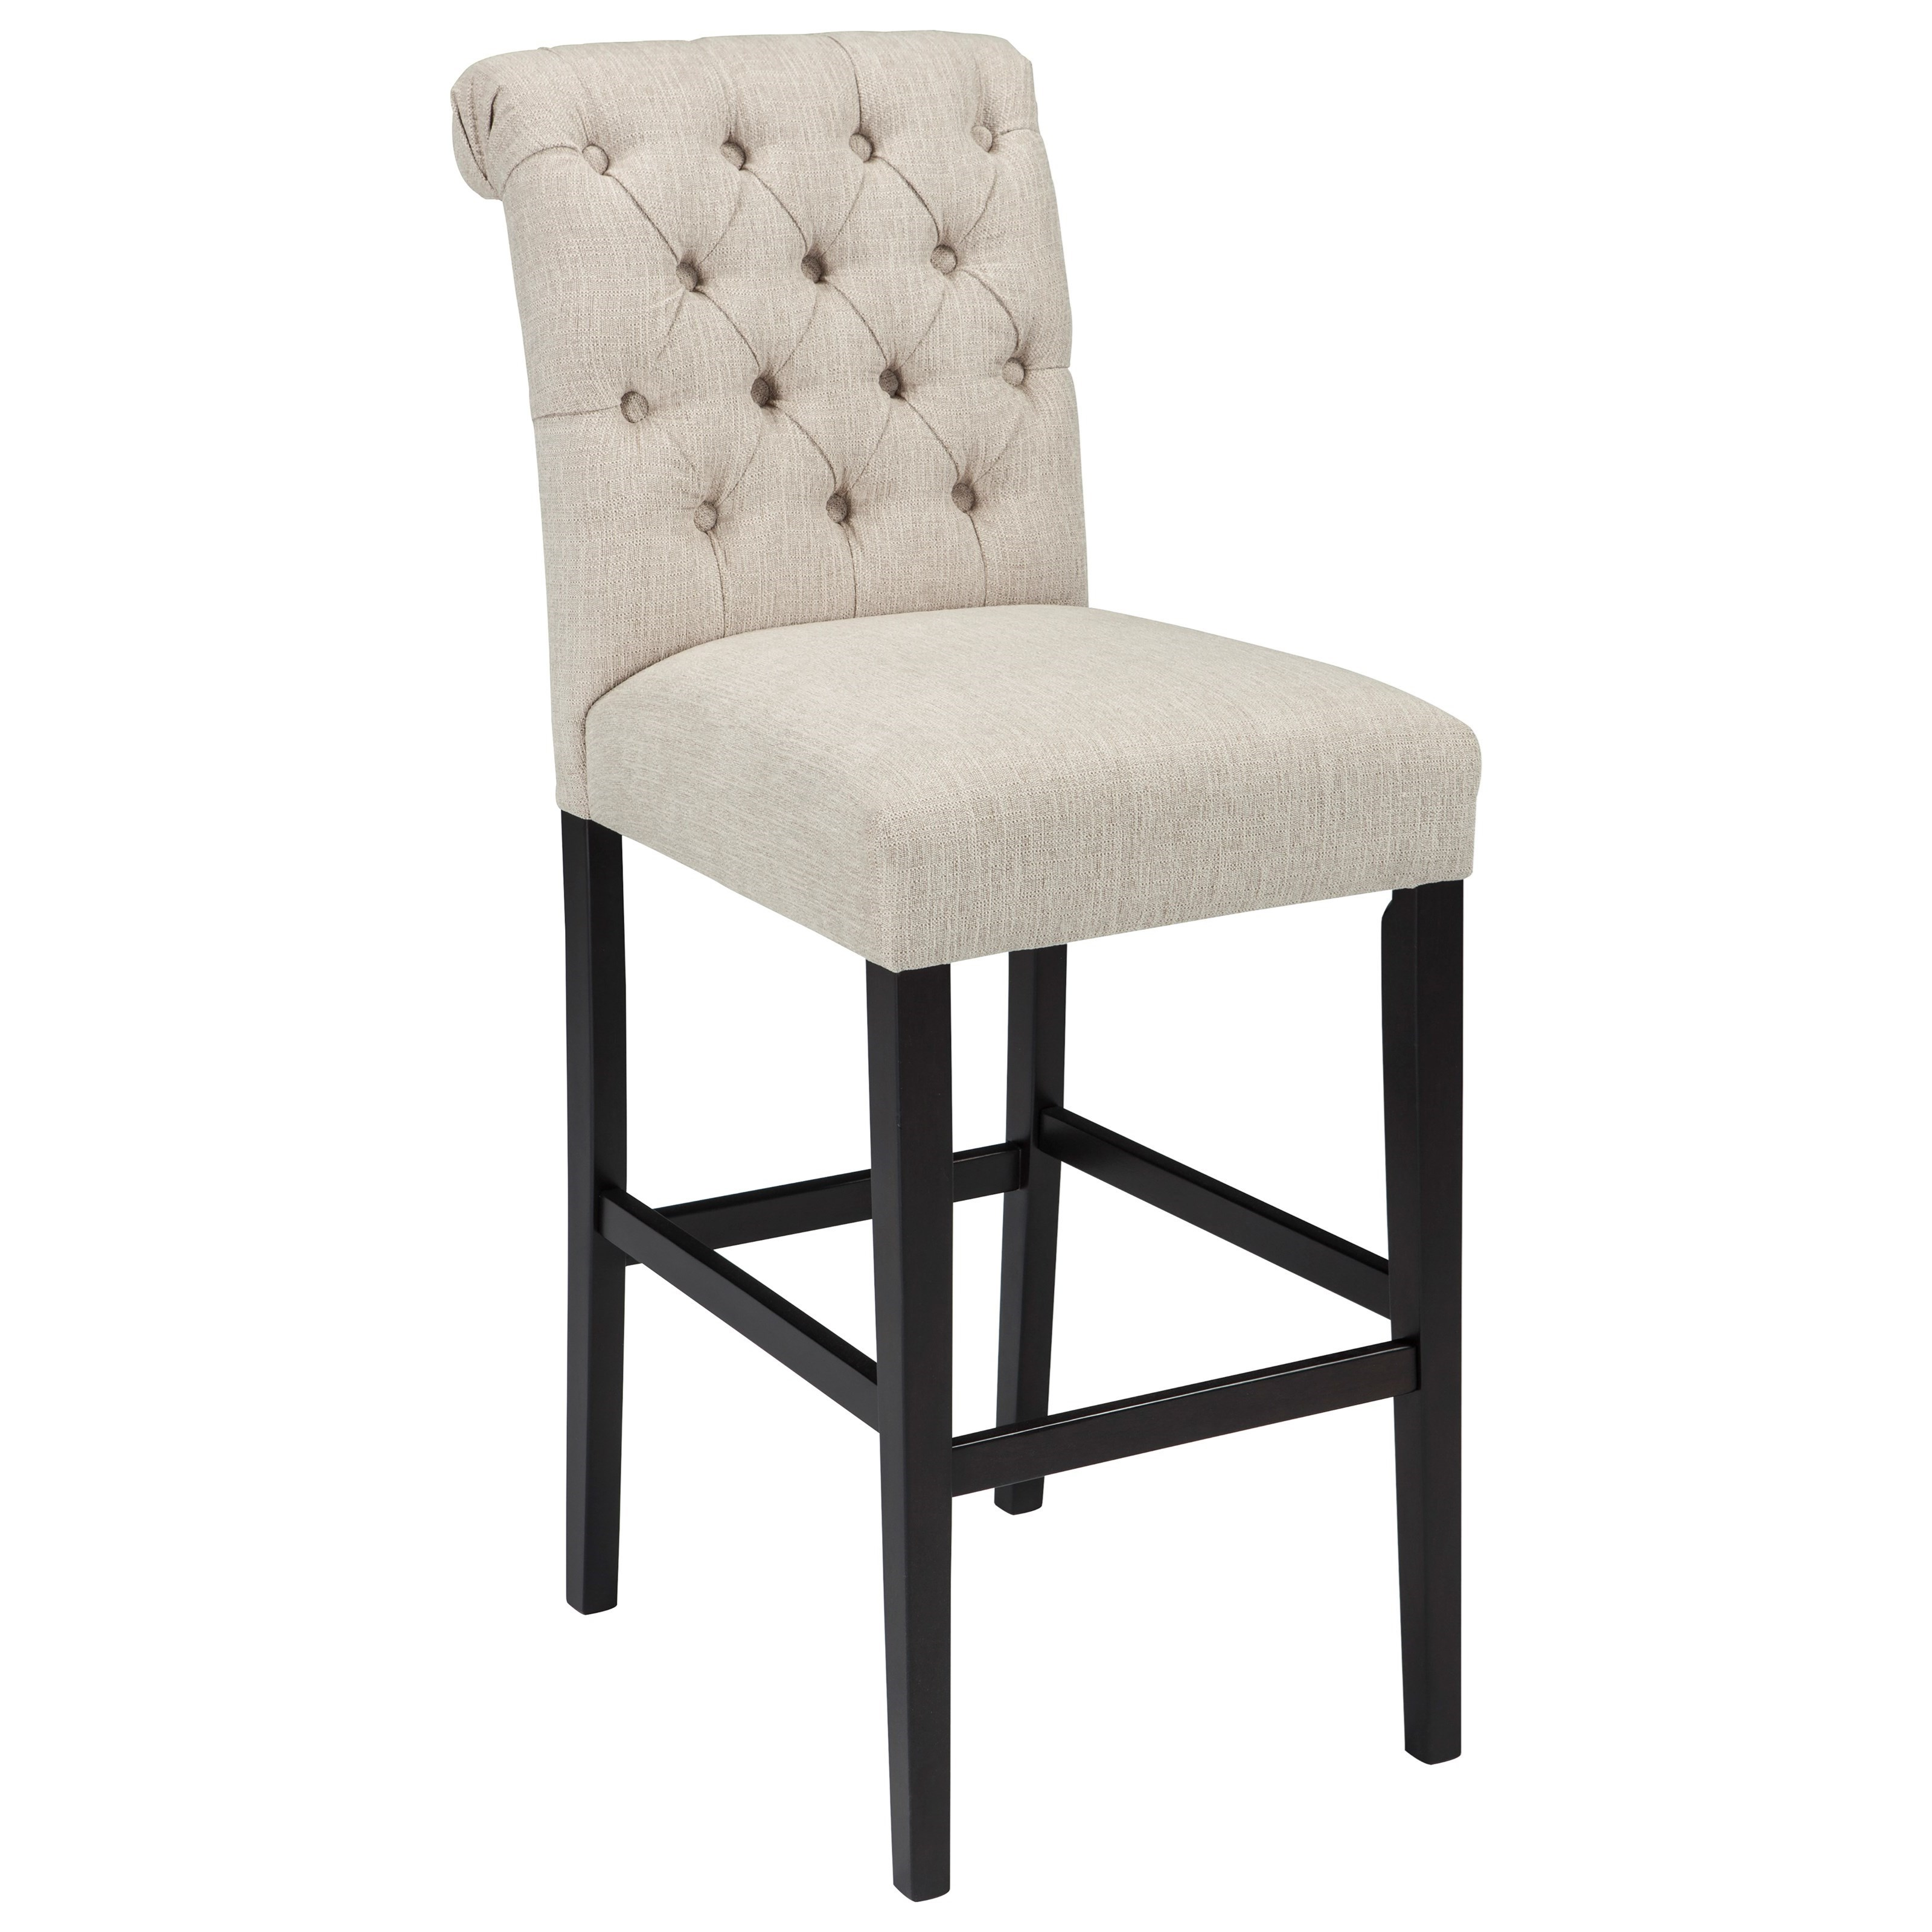 Tripton Tall Upholstered Barstool by Ashley (Signature Design) at Johnny Janosik